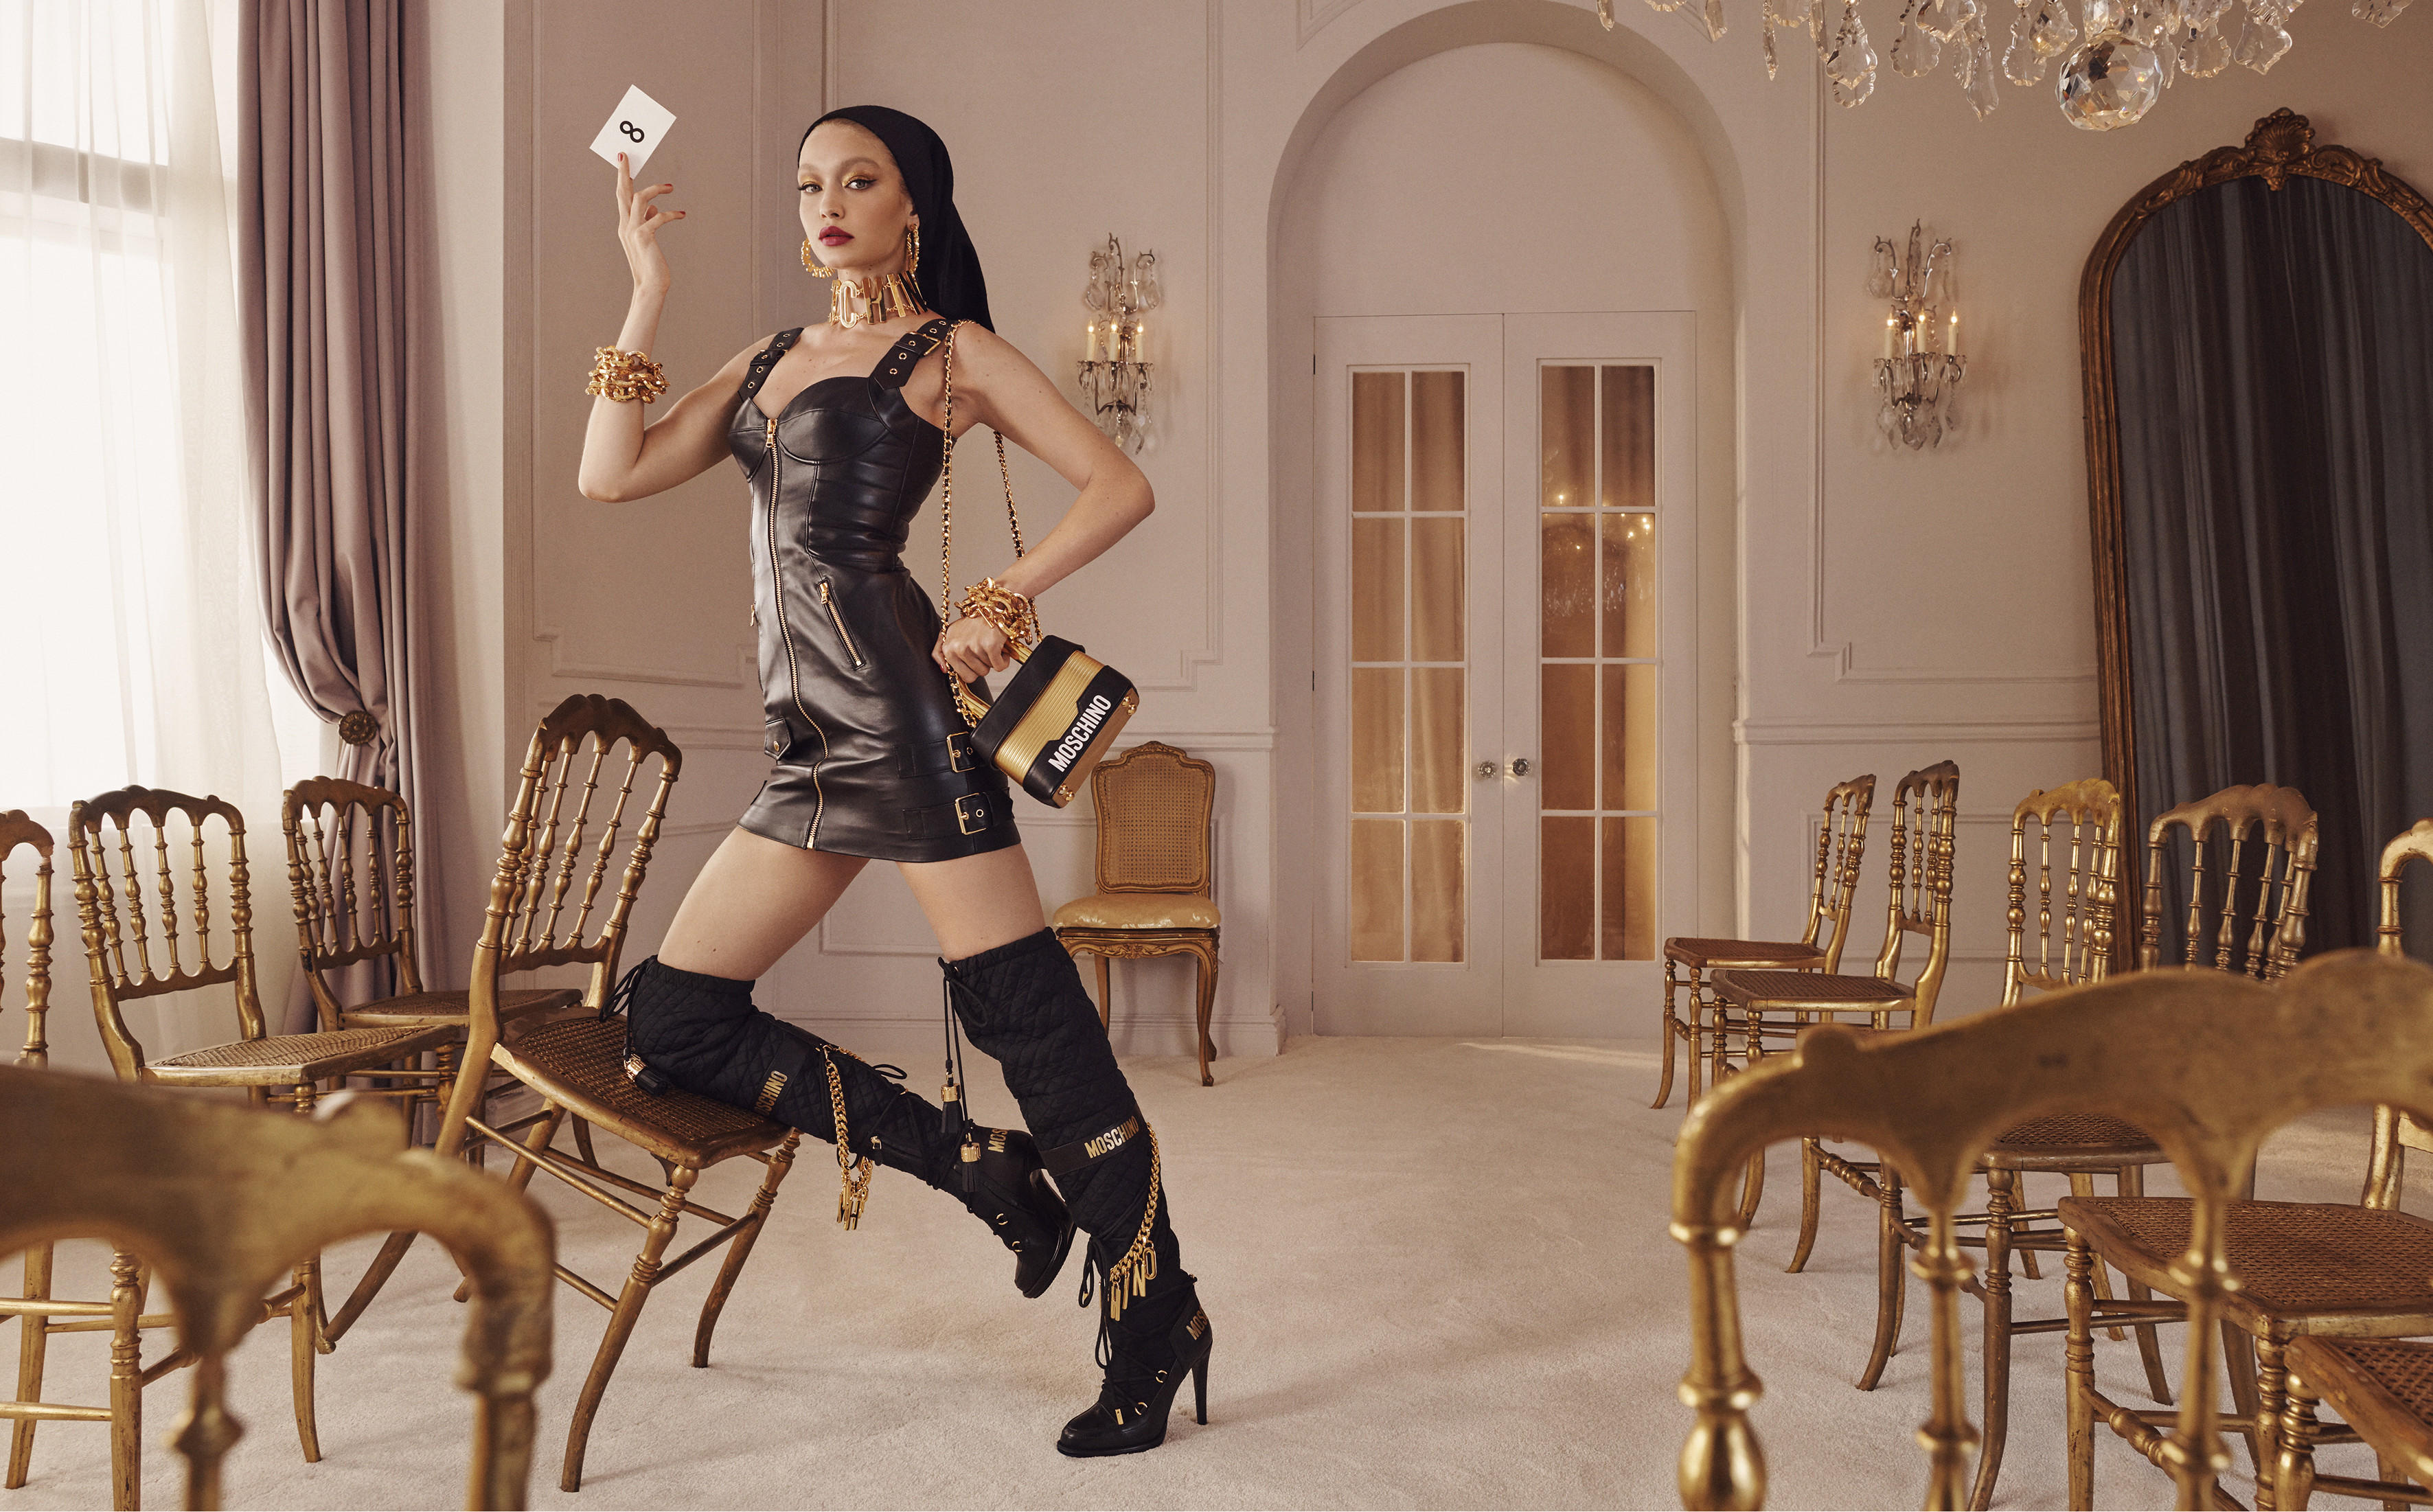 H&M x Moschino Teaser Campaign by Steven Meisel